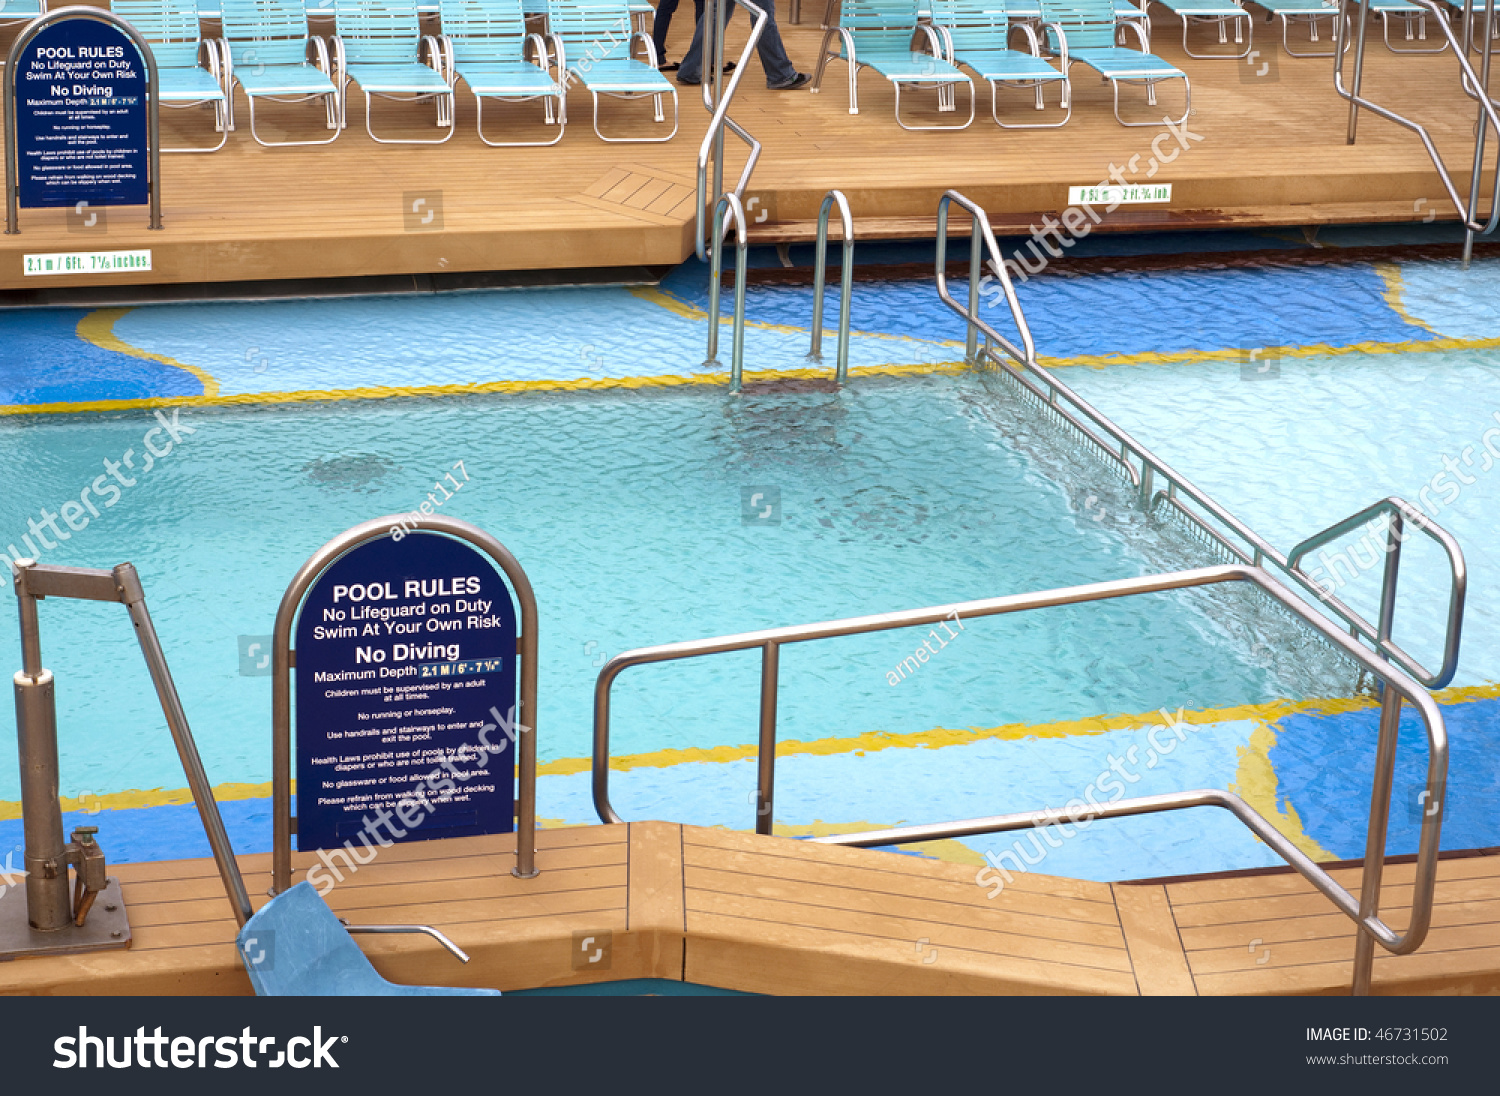 Pics photos swimming pool rules depths sign - Pool Rules